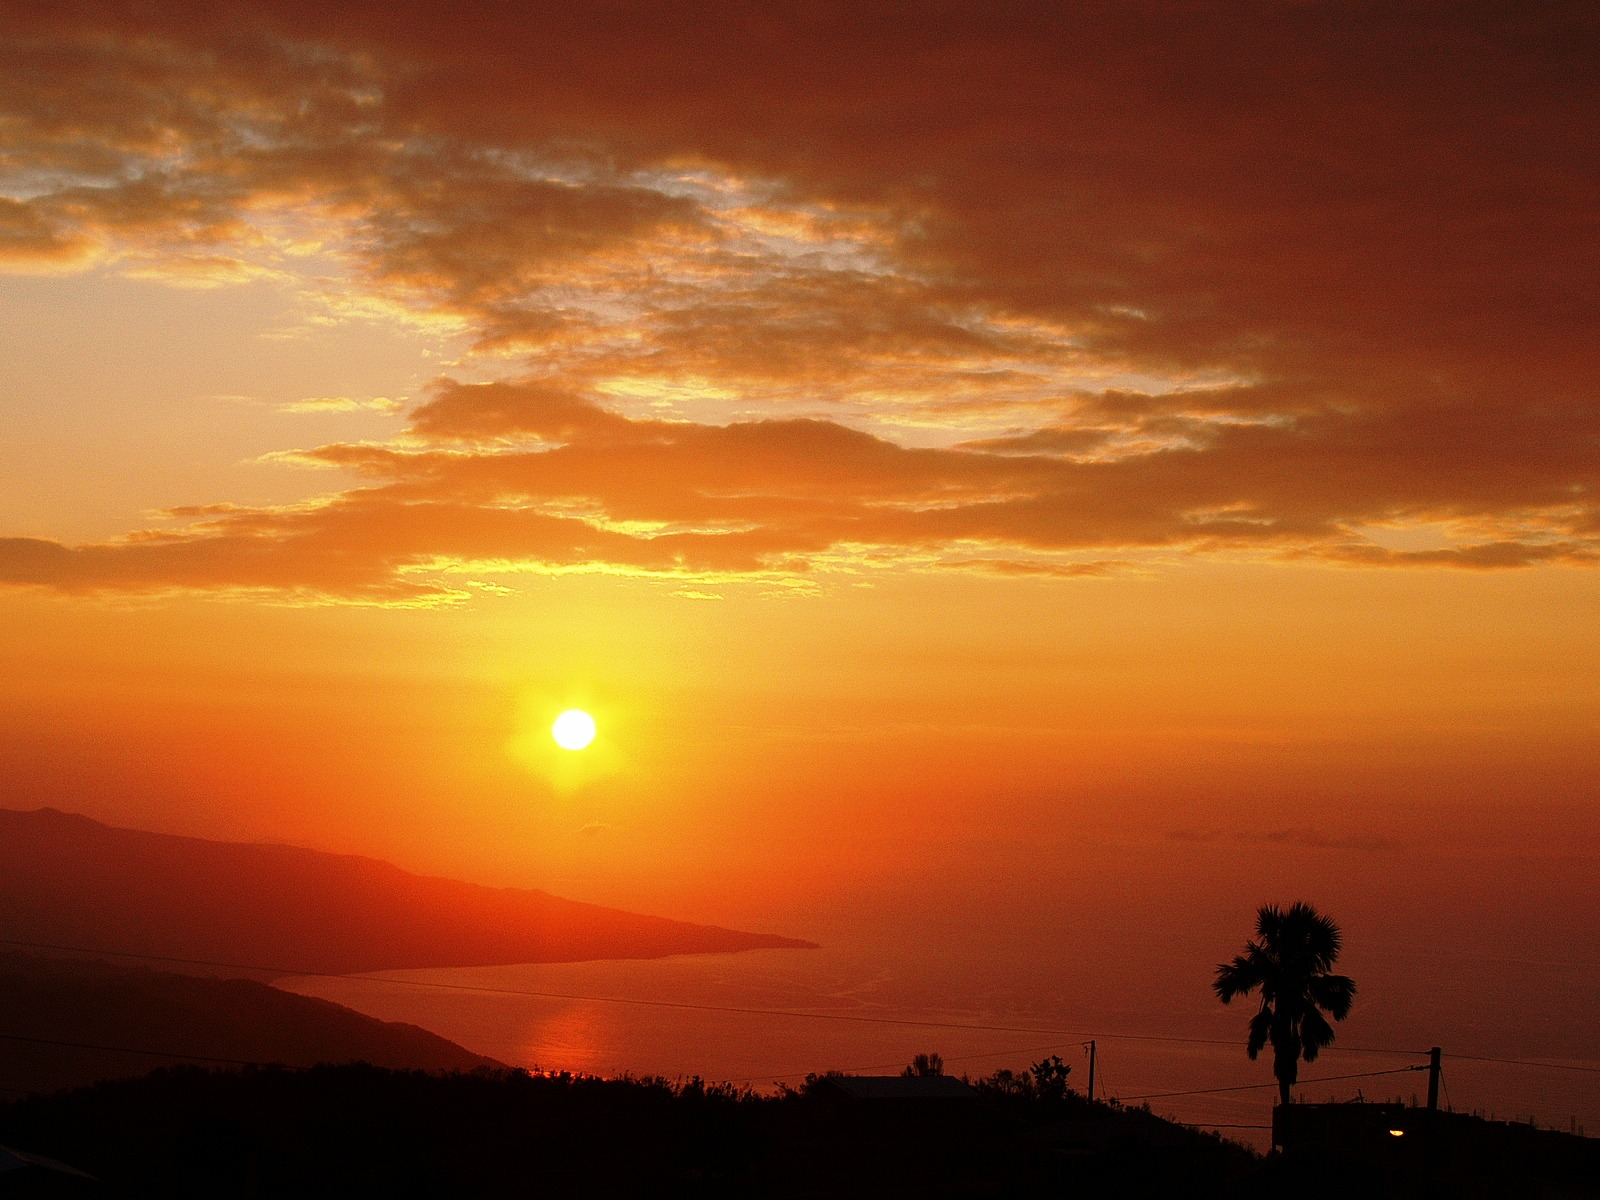 File:Jamaica sunrise.JPG  Wikipedia